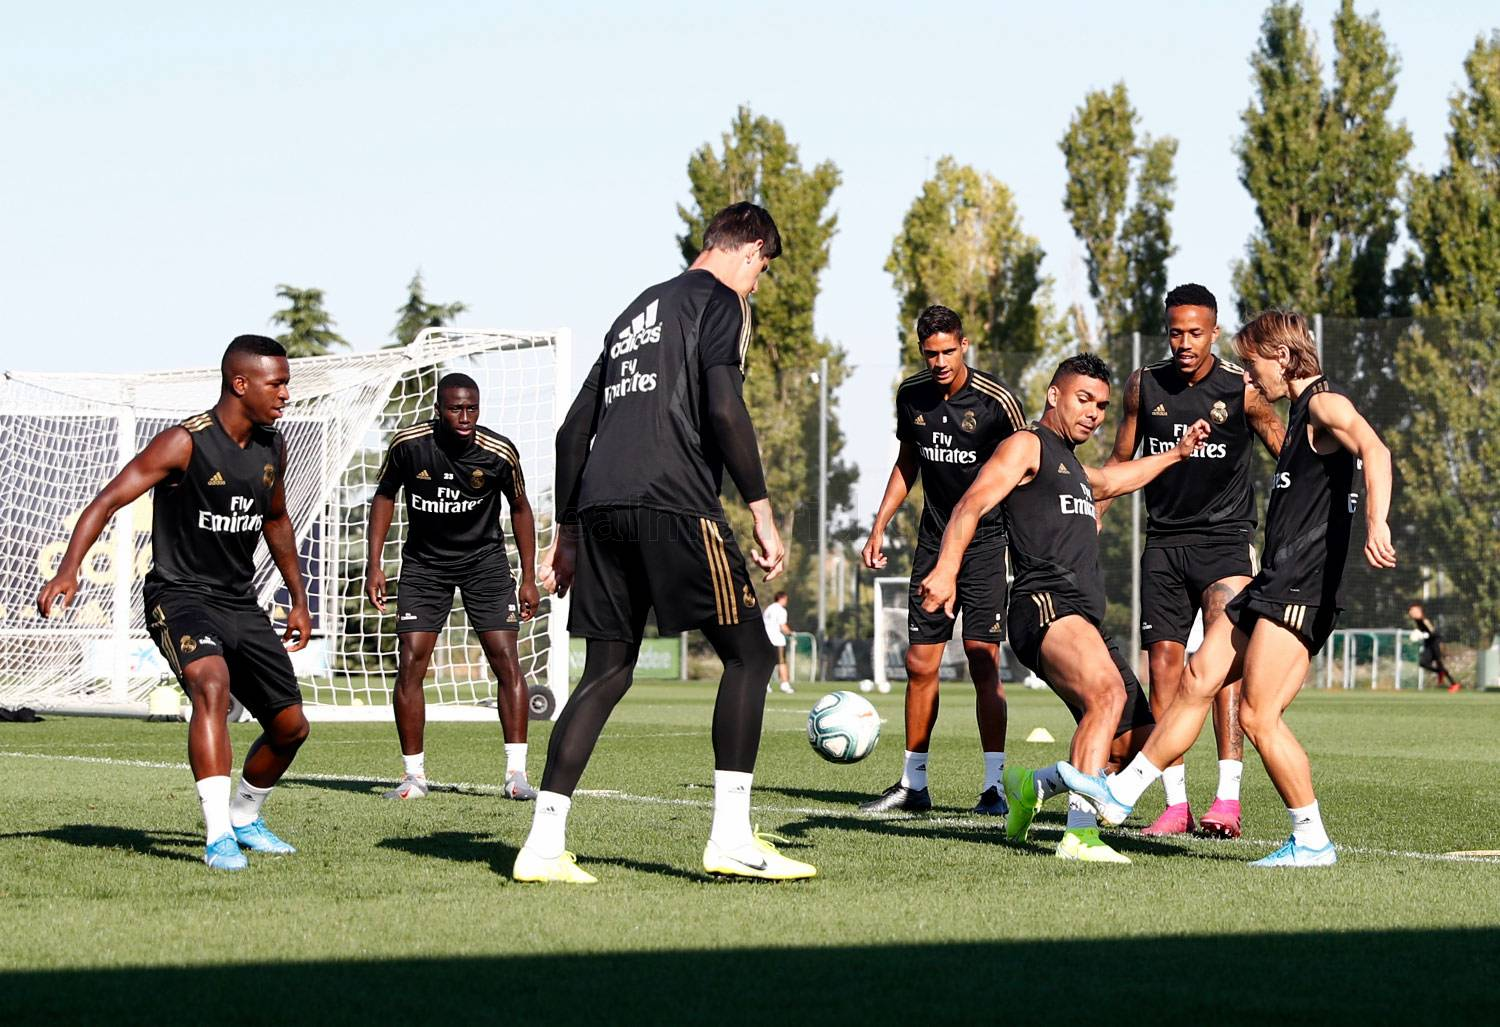 Real Madrid - Entrenamiento del Real Madrid  - 23-08-2019